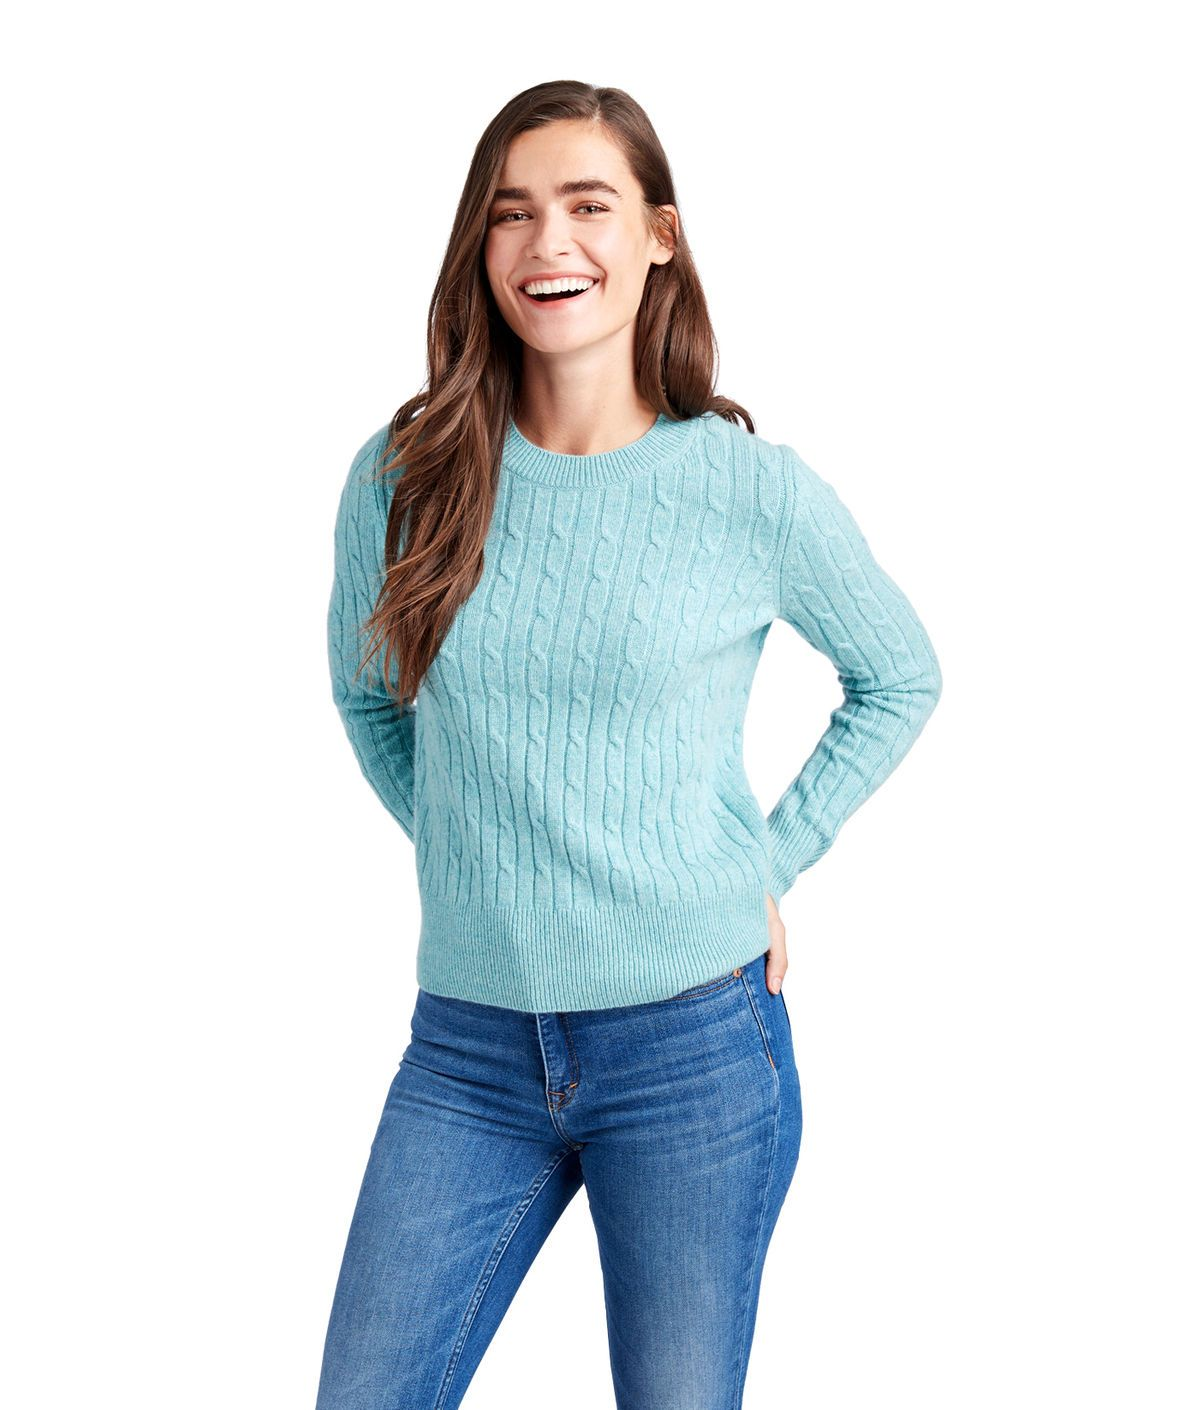 2b7dc6c48 Cashmere Coral Lane Sweater - XS